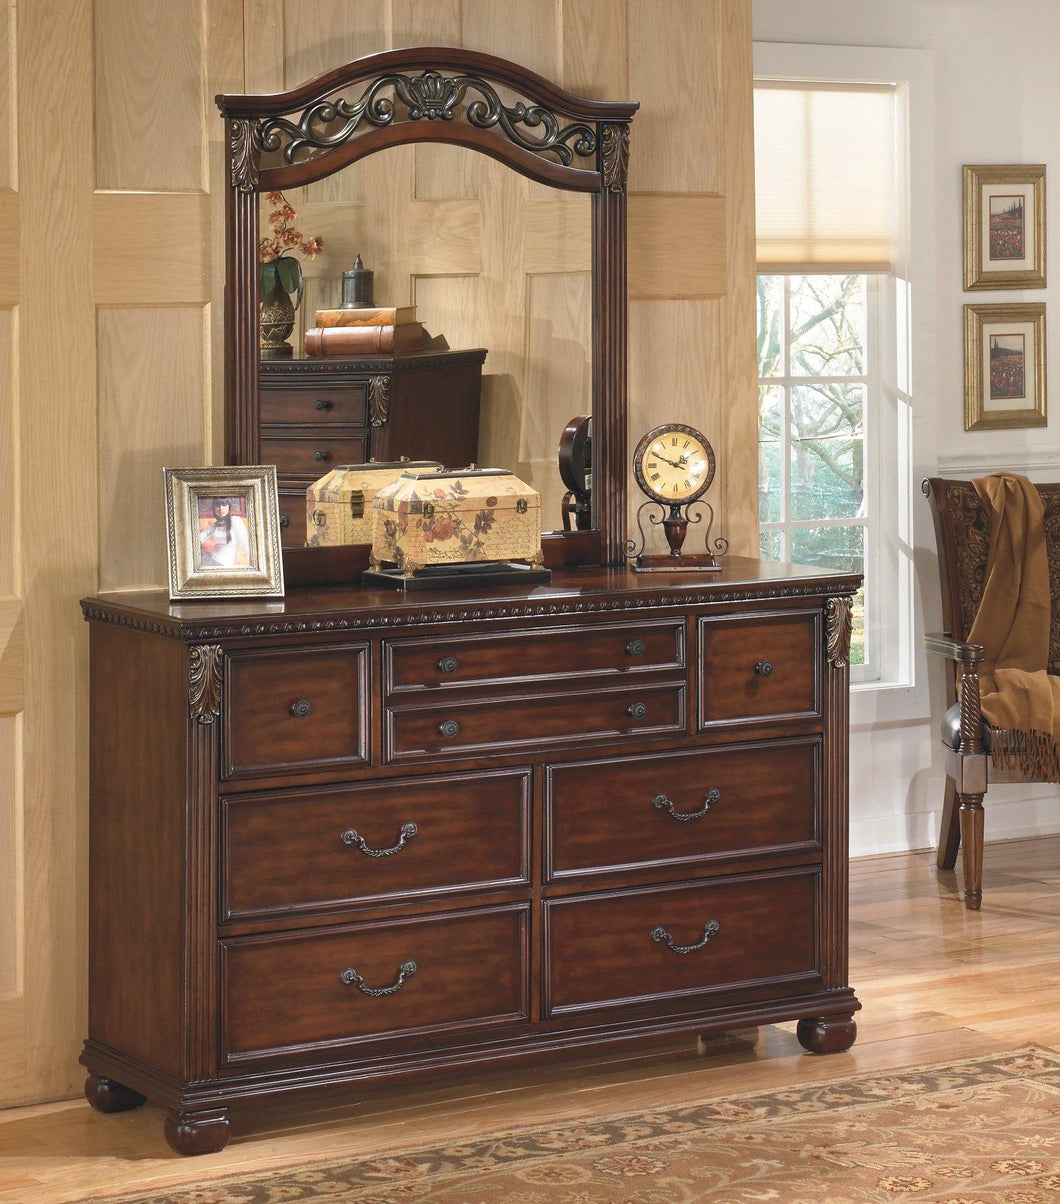 Leahlyn Dresser and Mirror B526B1 By Ashley Furniture from sofafair